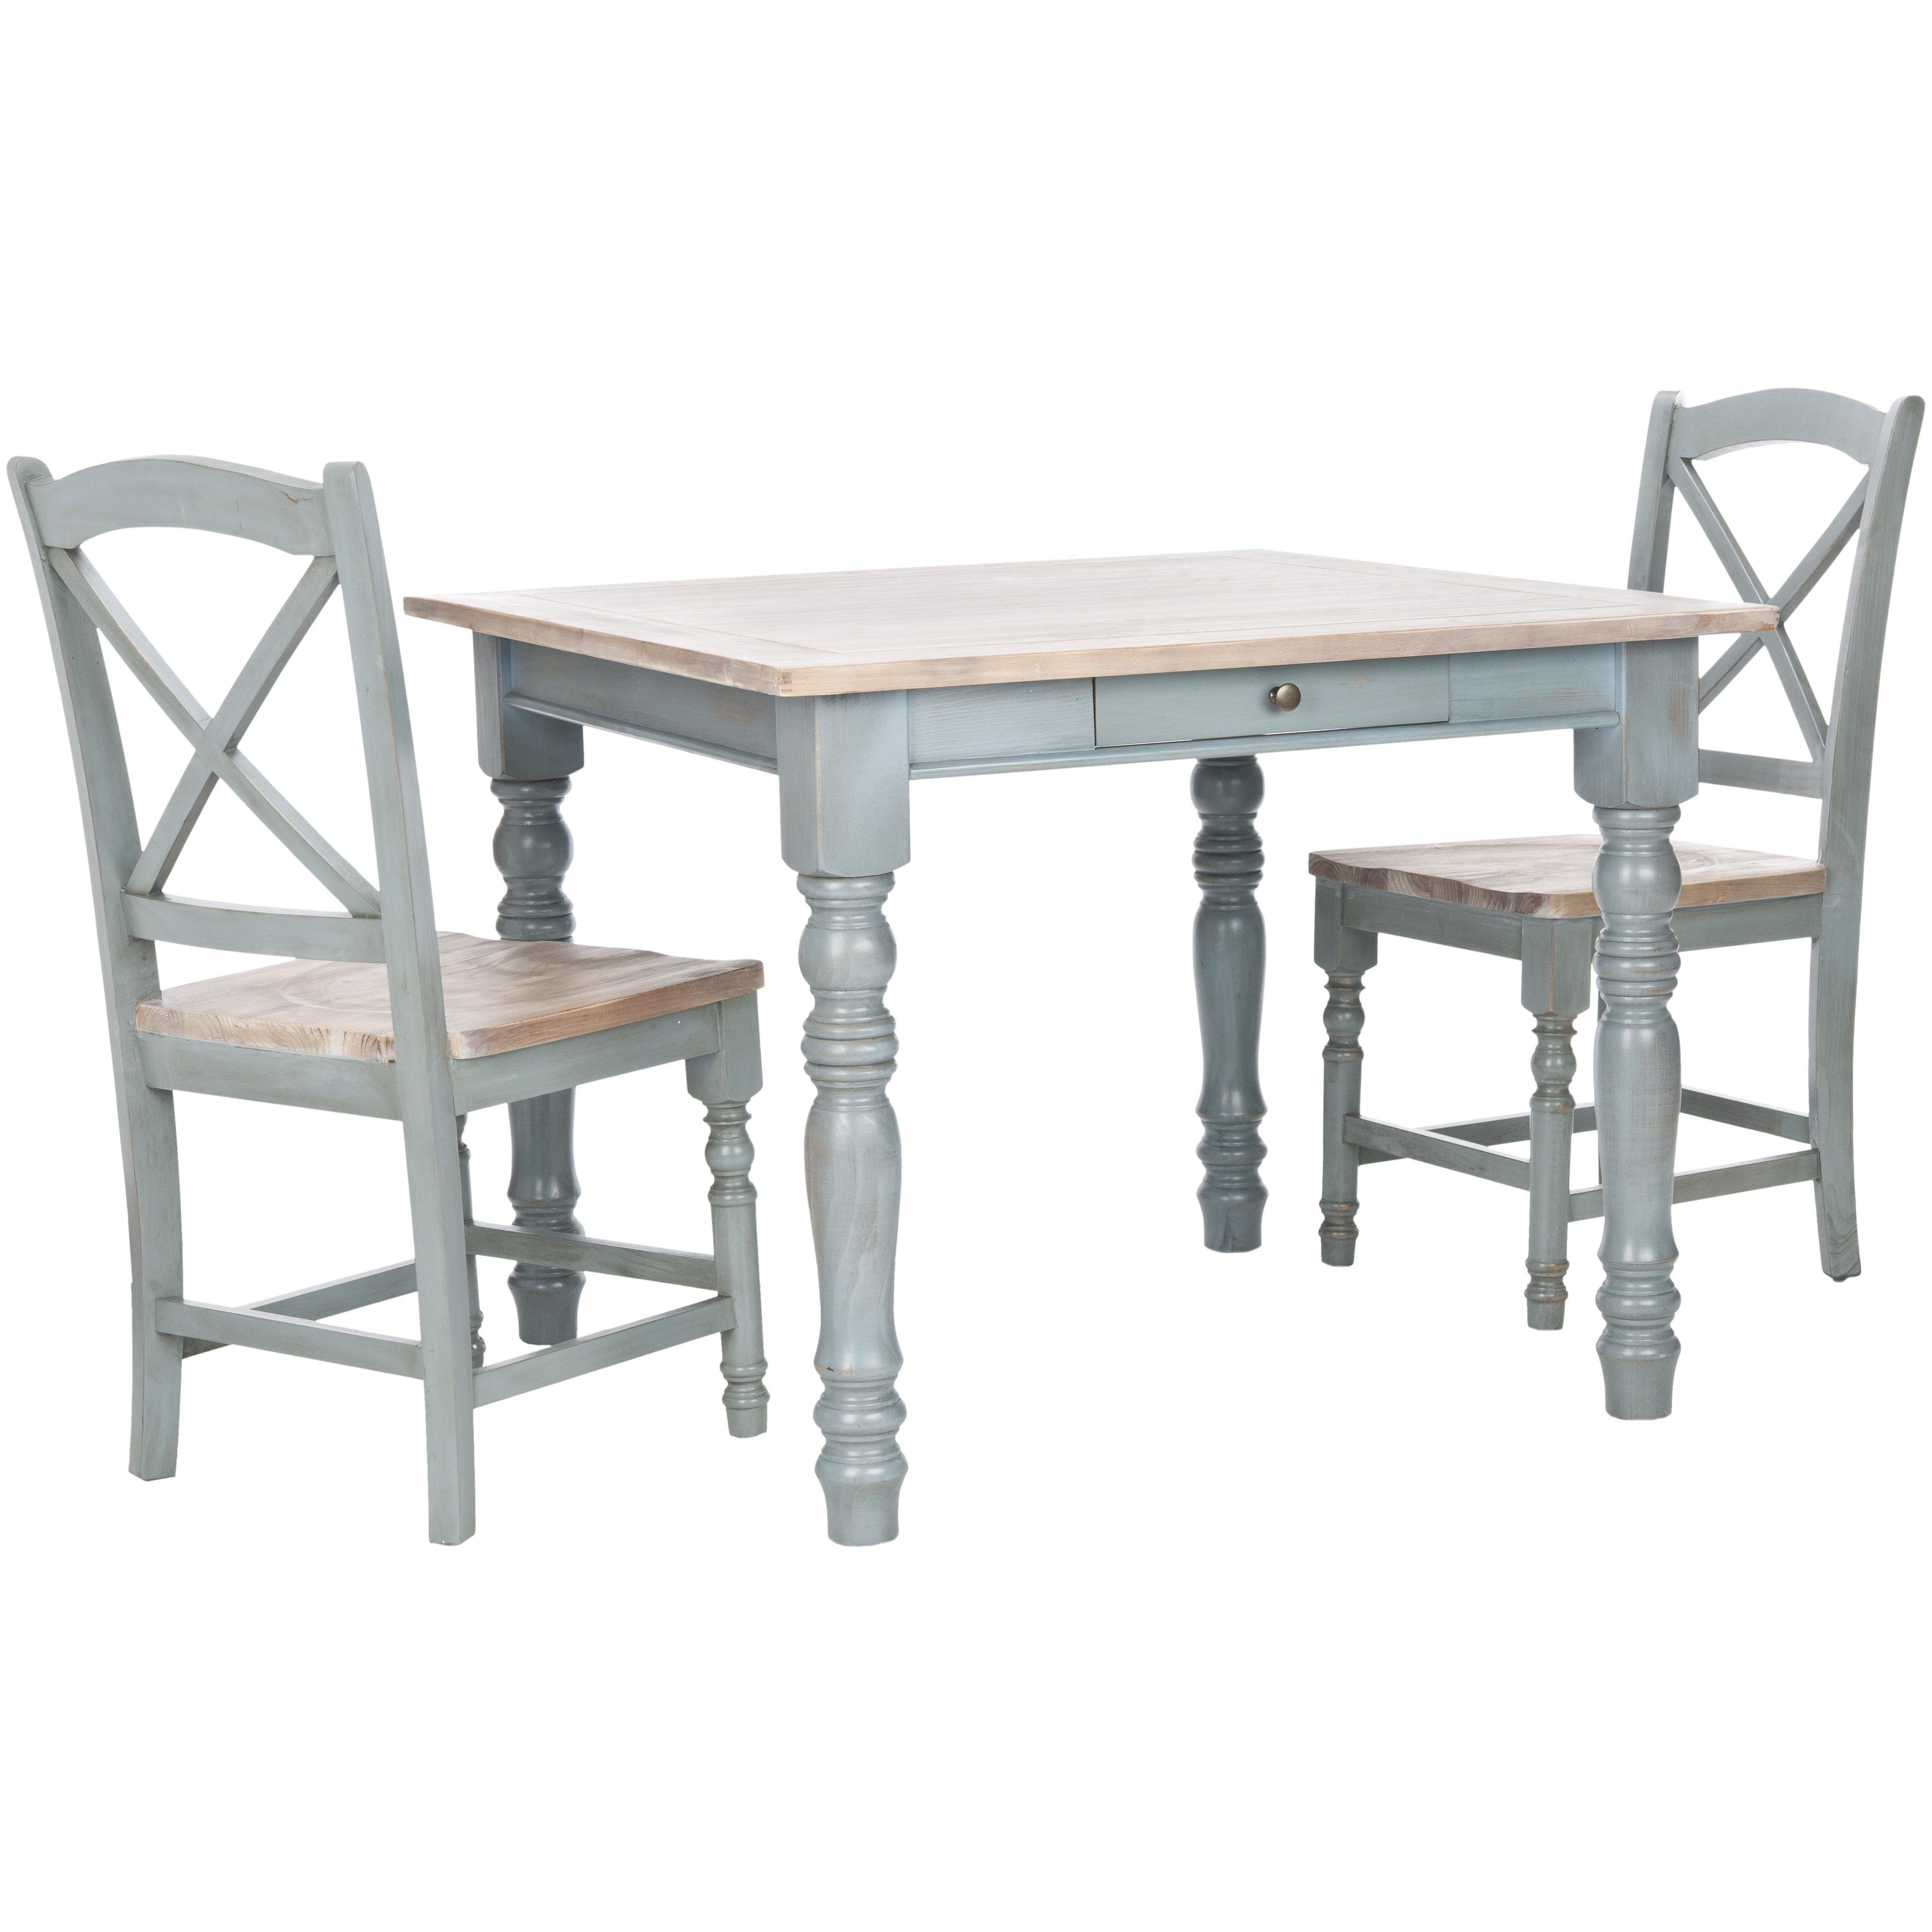 Beachcrest Home™ Swansea Dining Table | New Digs | Pinterest ...